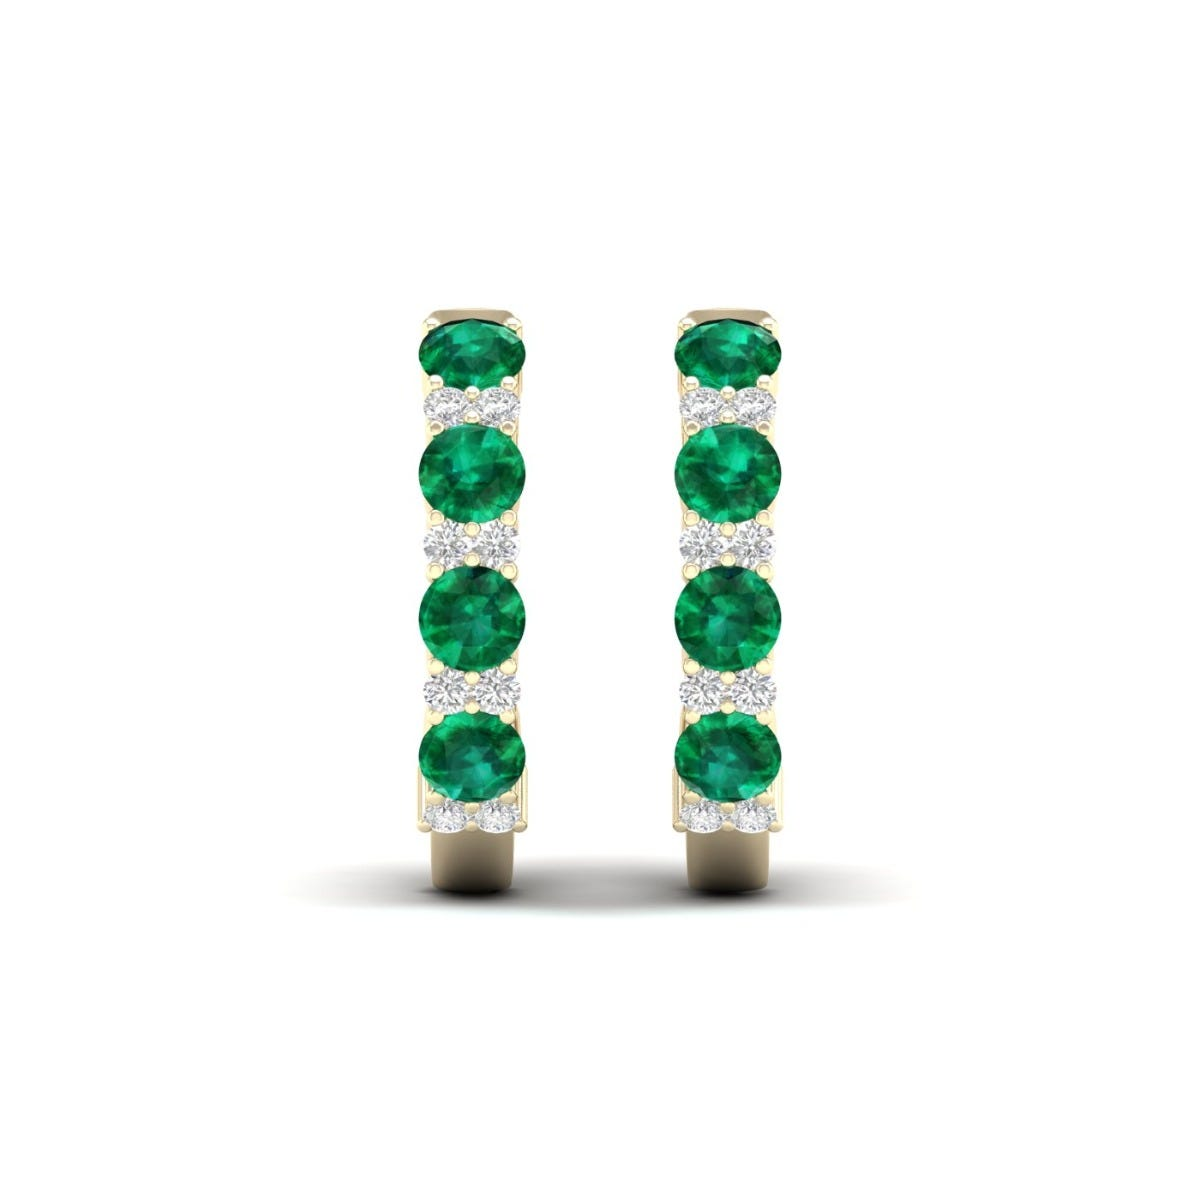 Emerald & Diamond Hoop Earrings in 10k Yellow Gold